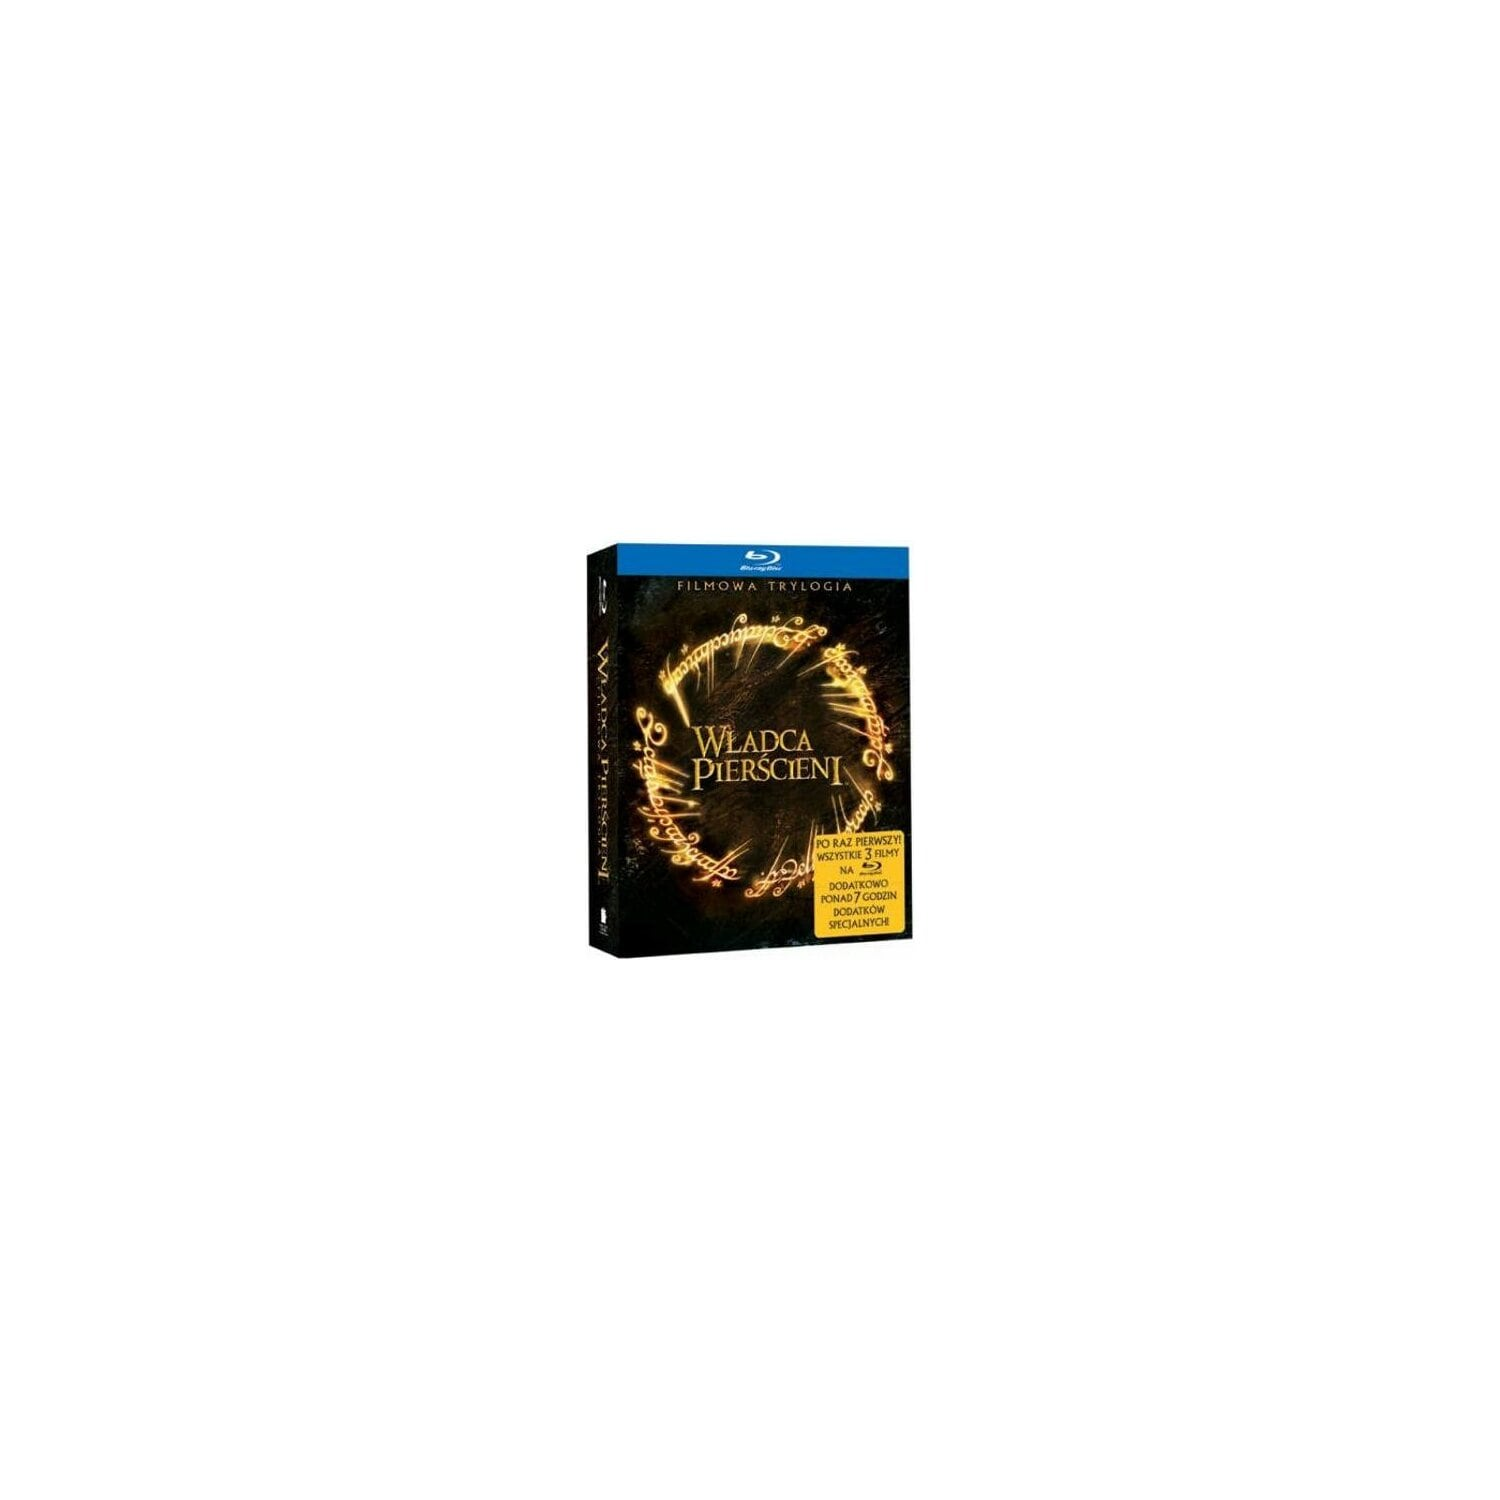 Film GALAPAGOS Władca Pierścieni Trylogia (3BD + 3DVD) Lord of the Rings: Trilogy